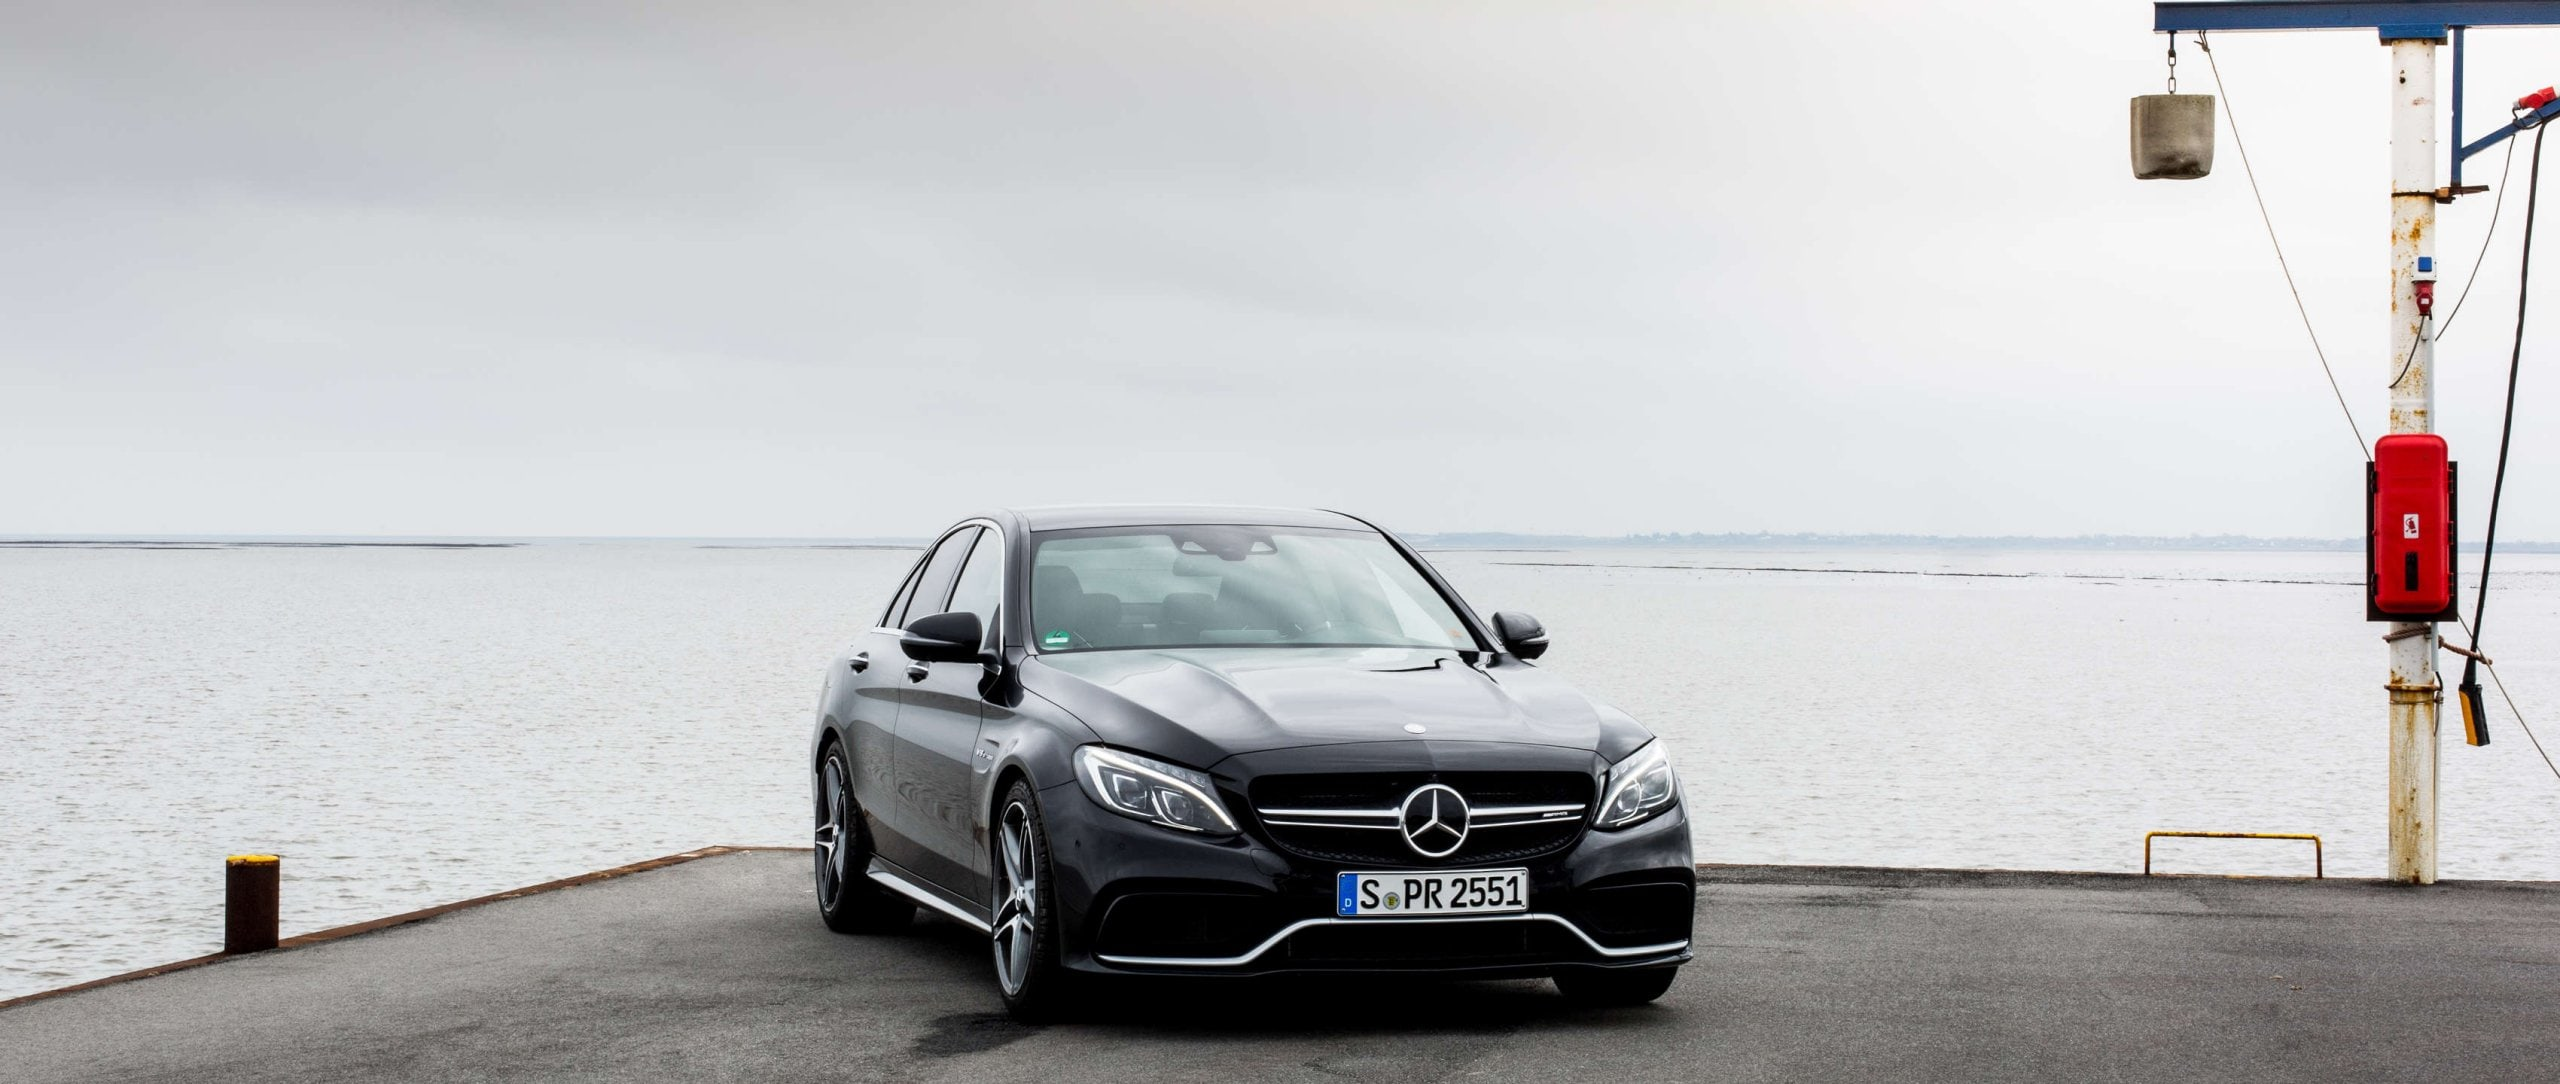 Mercedes-AMG C 63 S (W 205): front view of a black model.